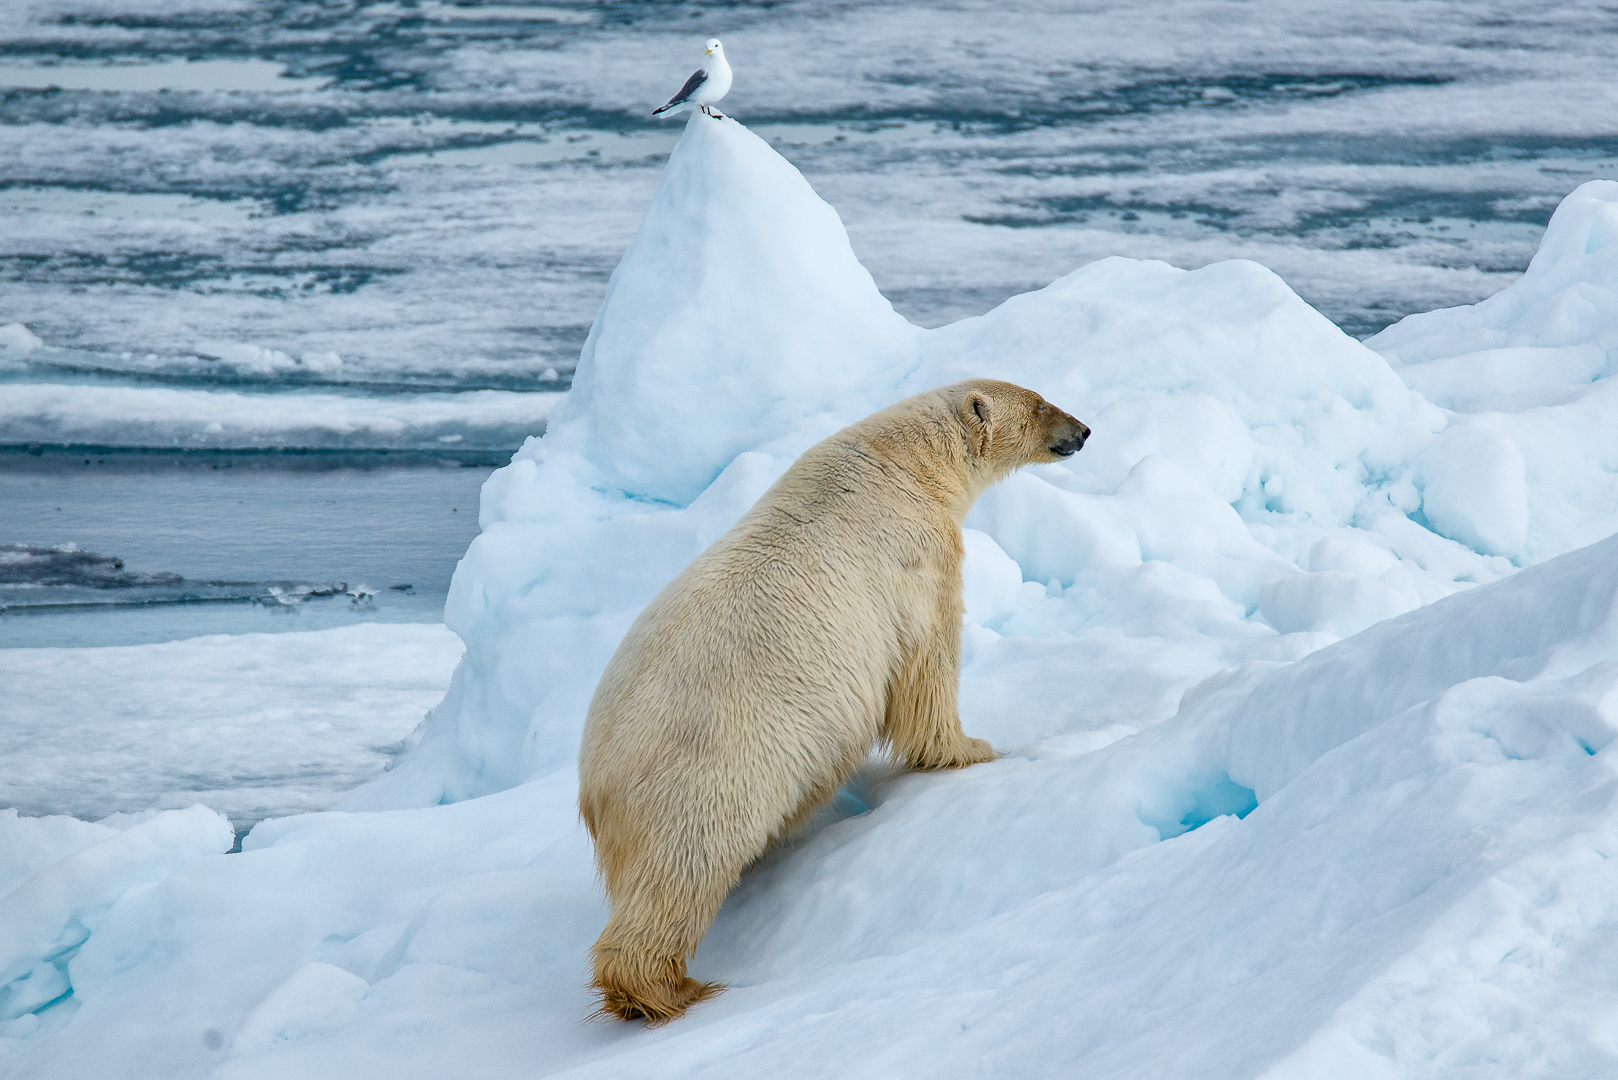 Polar Bear near Svalbard (c) Michael Smyth 2017